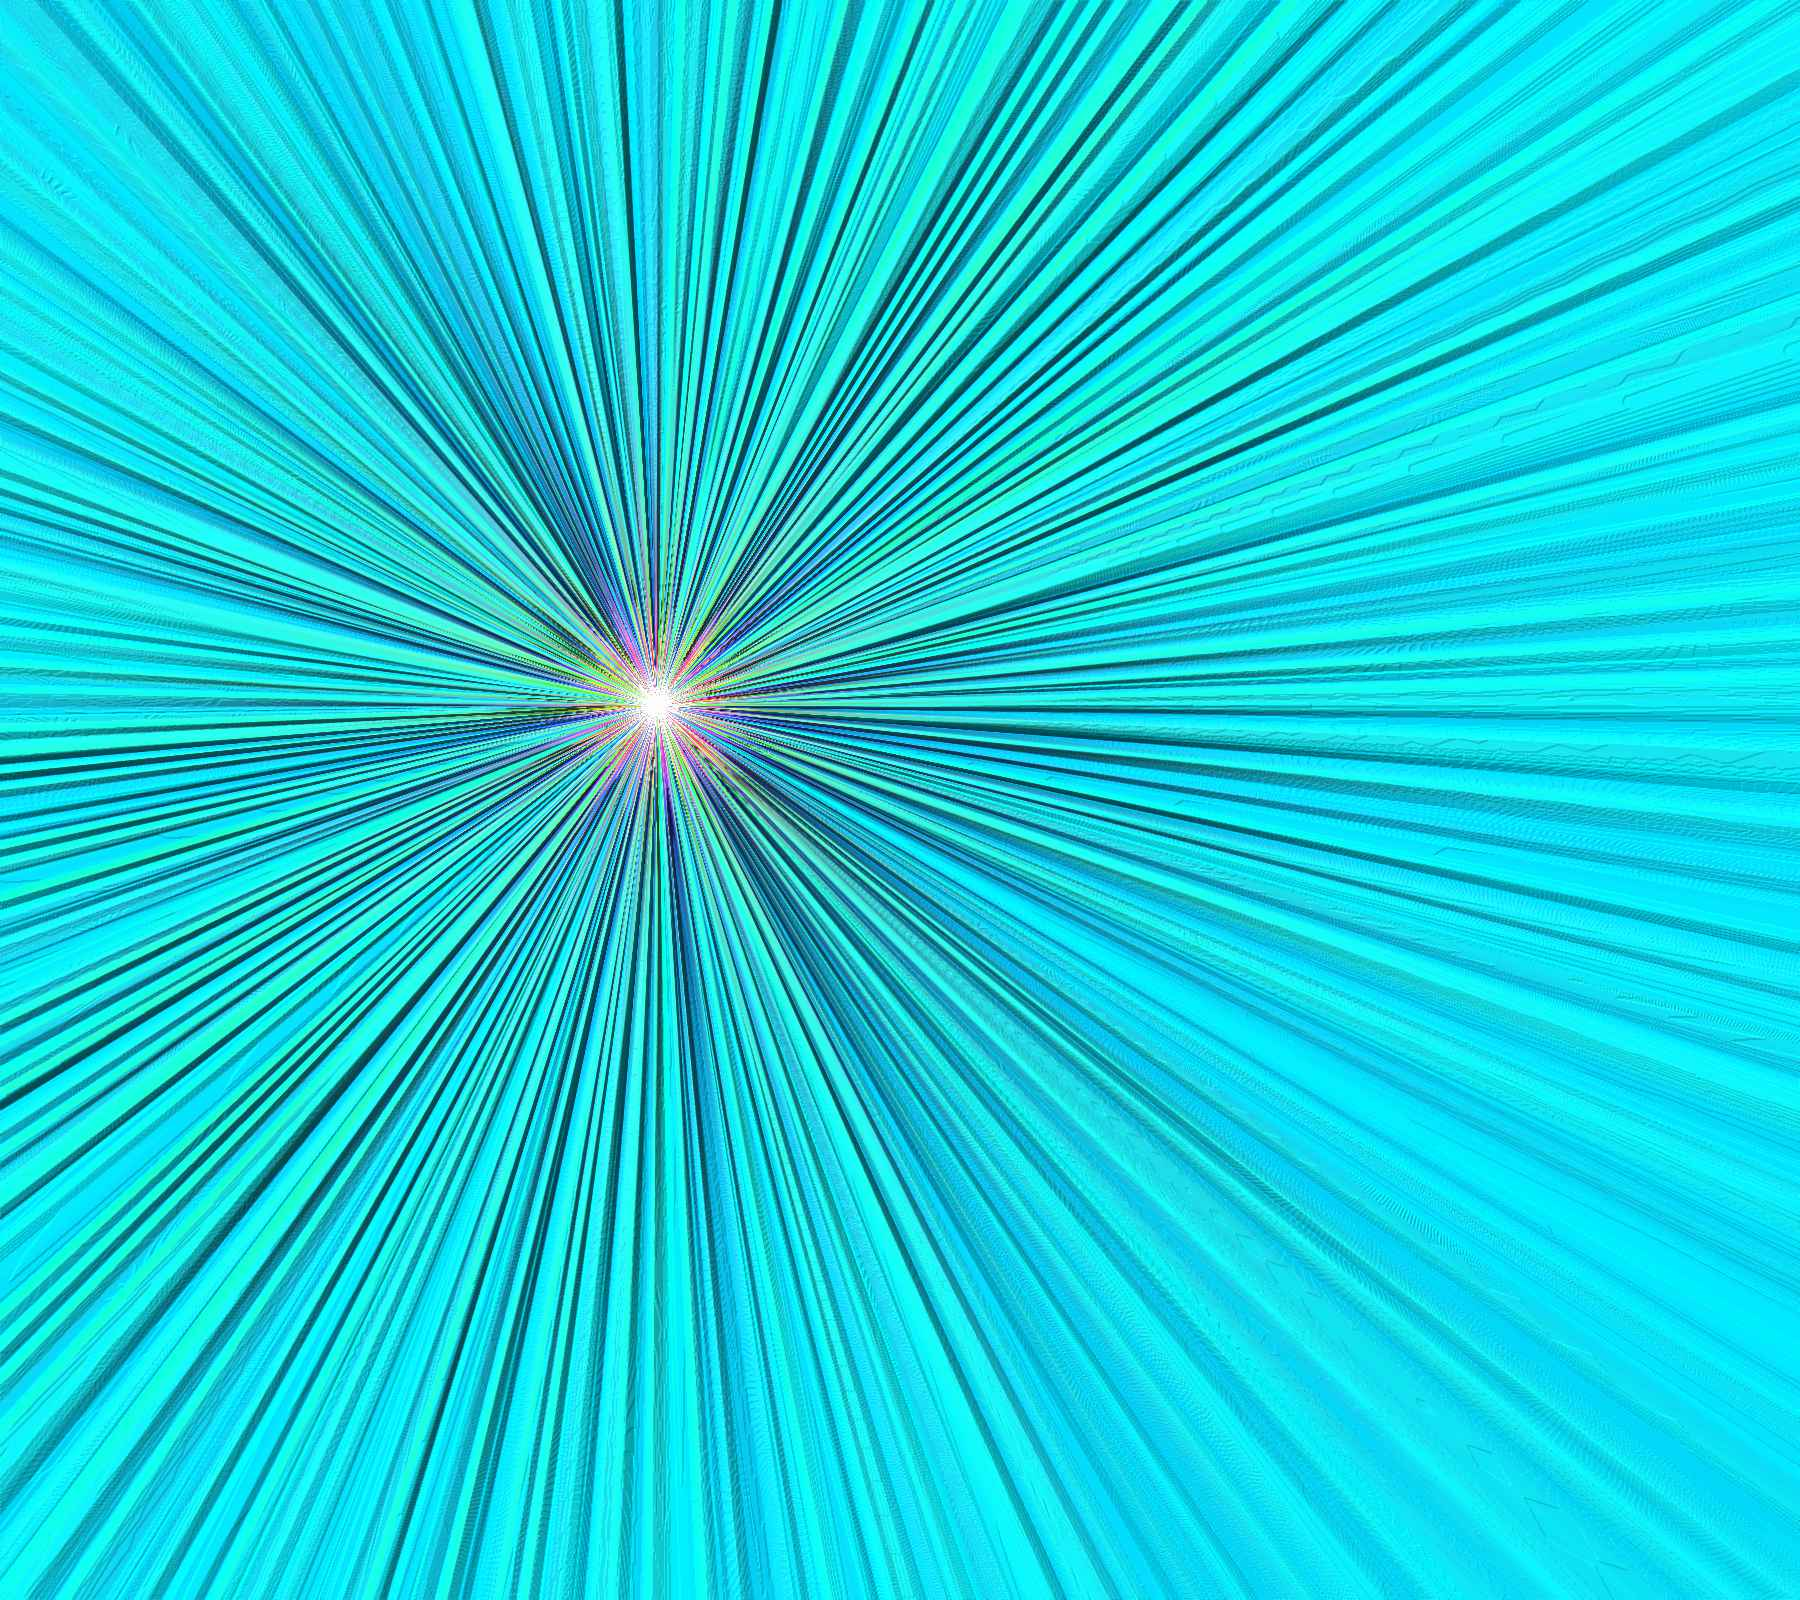 Teal Starburst Radiating Lines Background 1800x1600 1800x1600